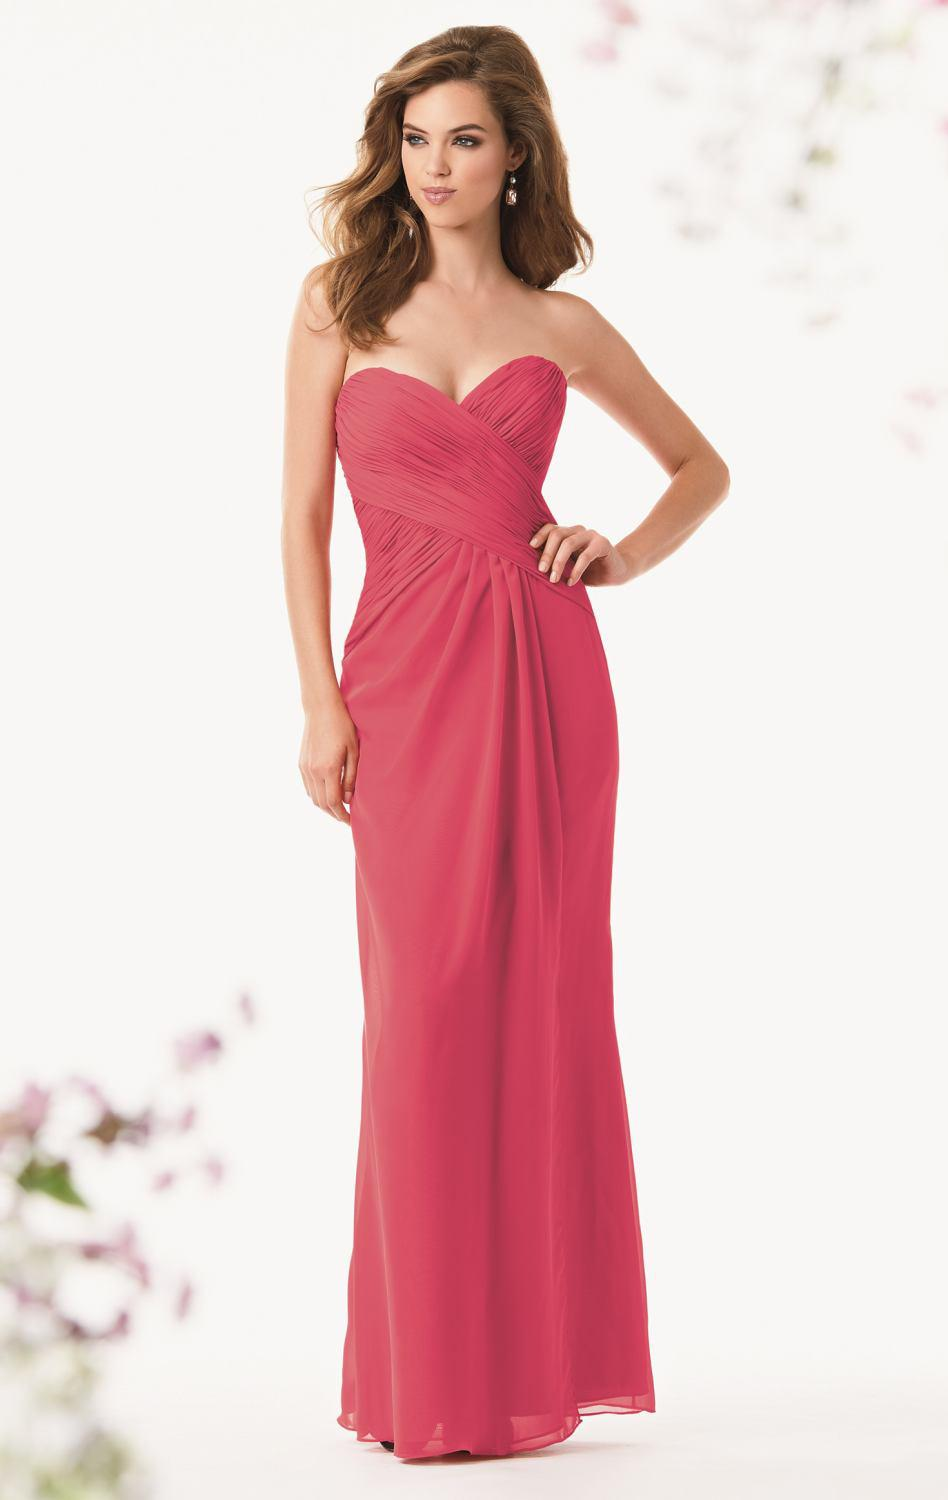 Water And Watters Bridesmaid Dresses - Wedding Dress Designers